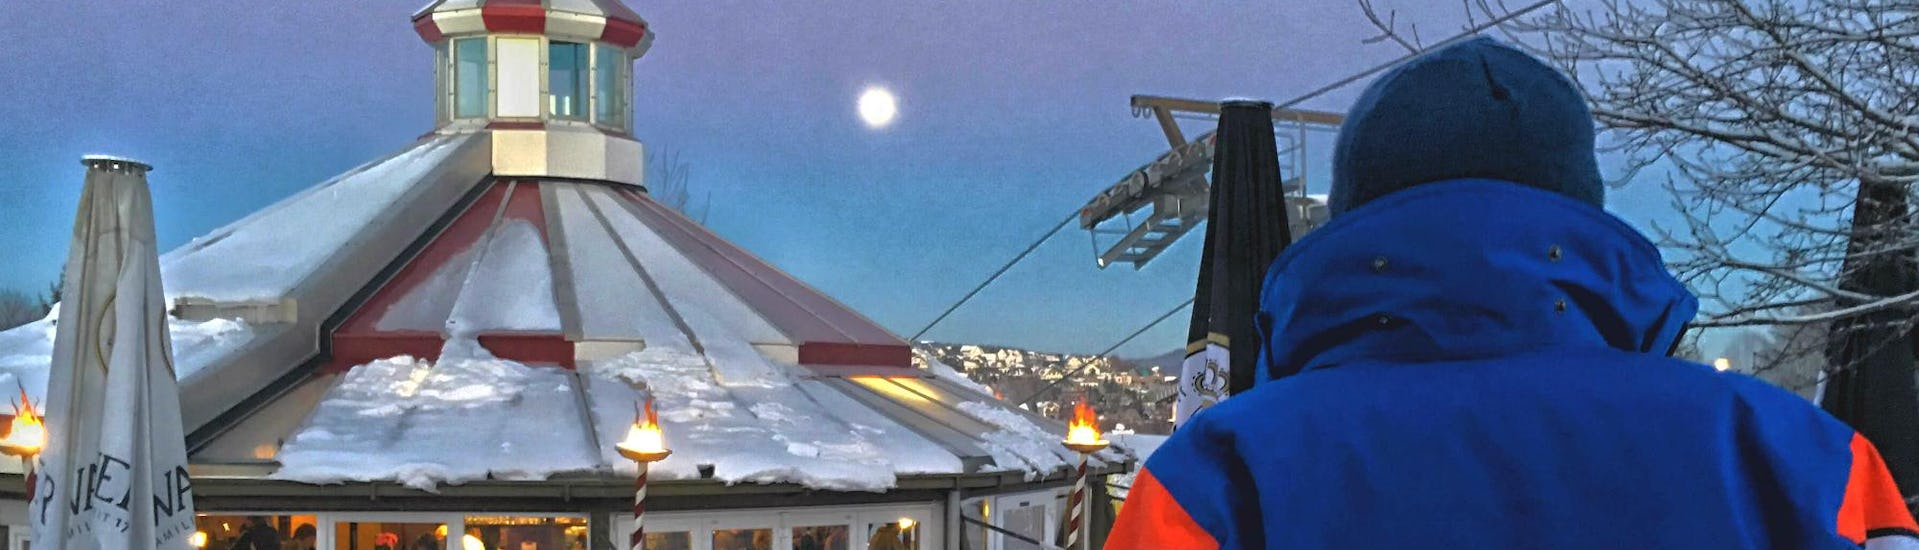 A ski instructor of the ski school Neue Skischule Winterberg is enjoying the view of the moon during the Private Night Ski Lessons - All Levels in Winterberg.